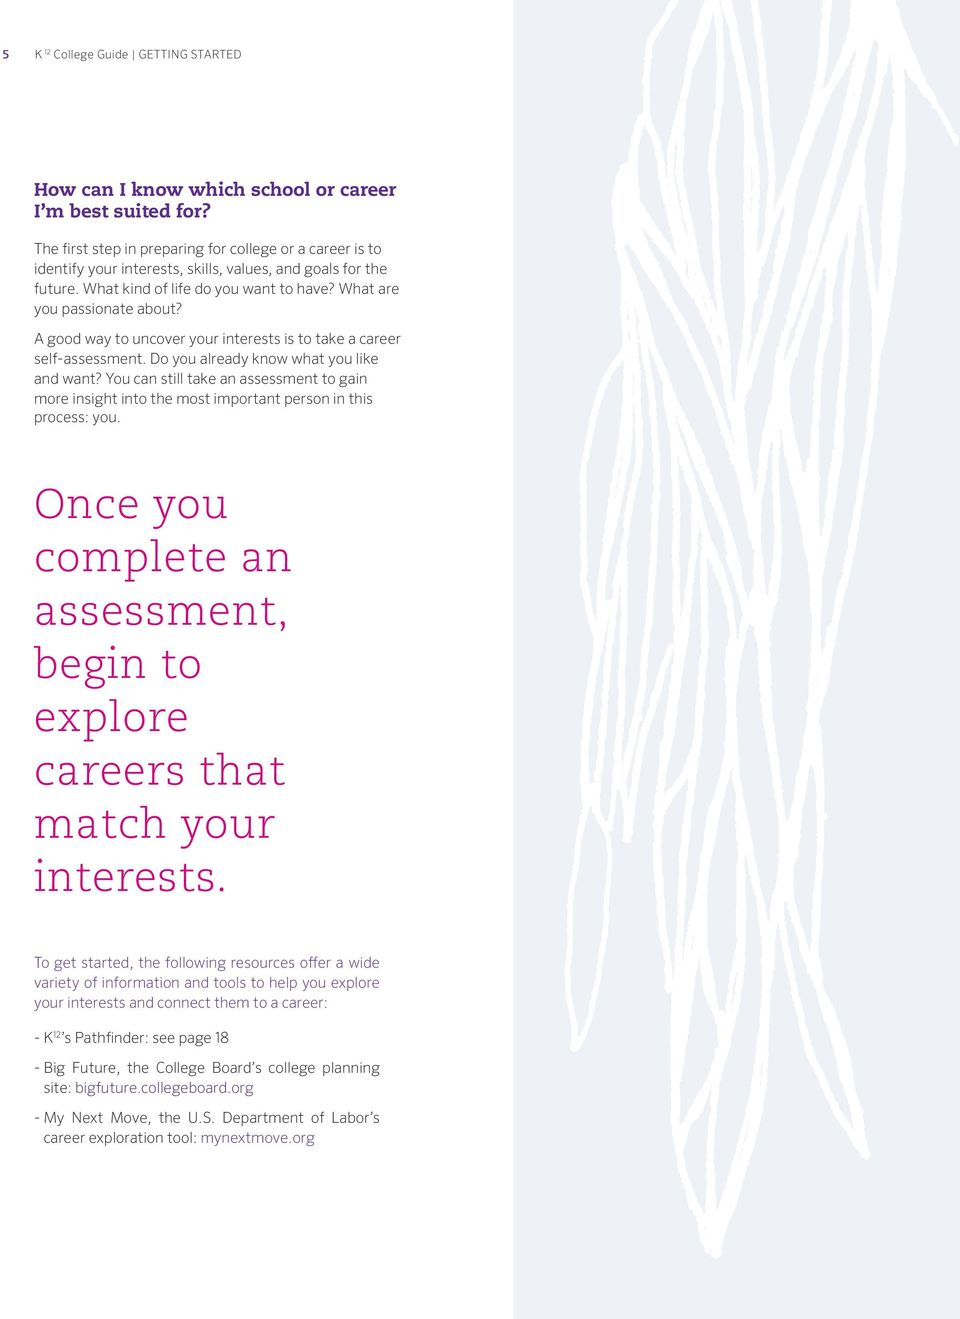 A good way to uncover your interests is to take a career self-assessment. Do you already know what you like and want?